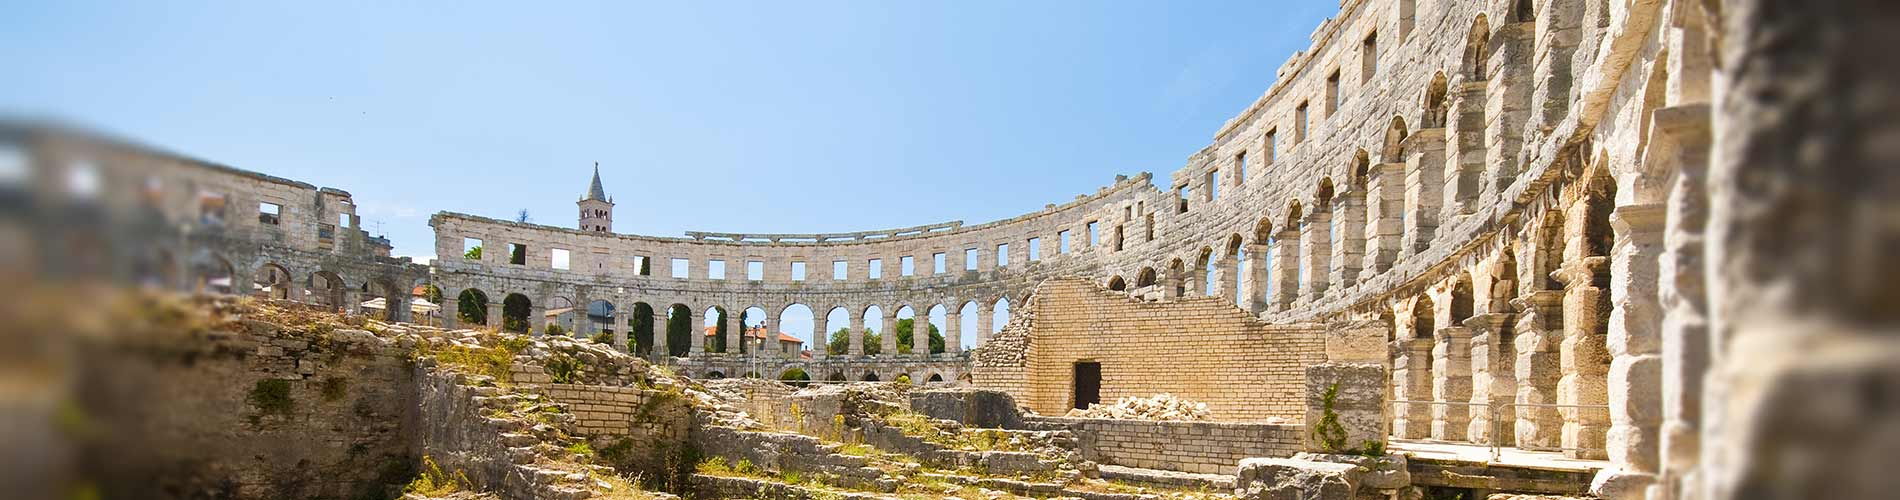 Inside the Roman amphitheater Pula Croatia.jpg